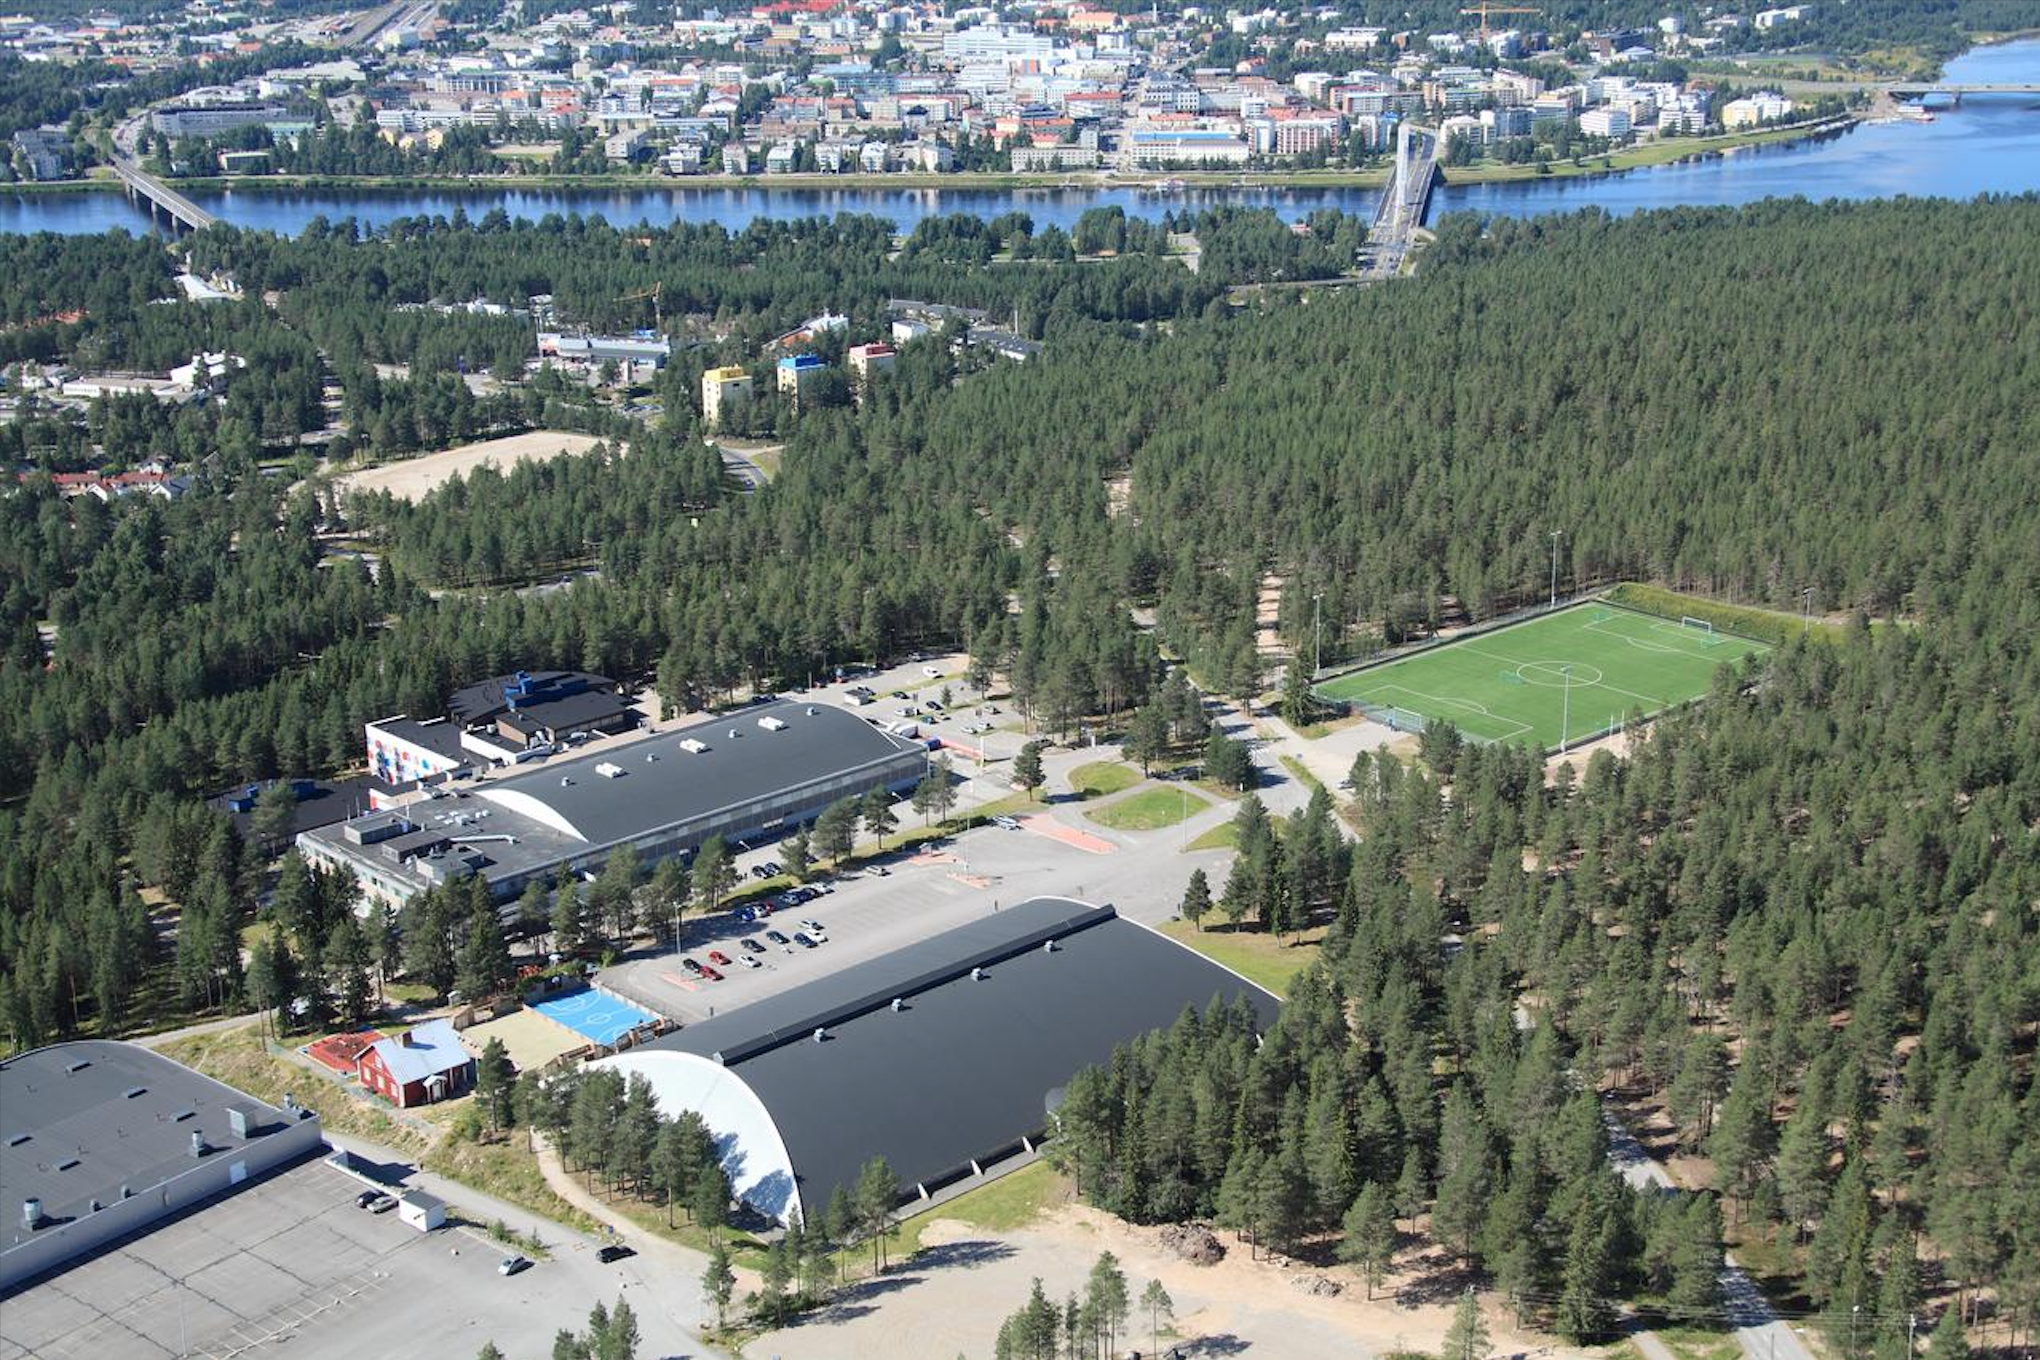 Santasport Olympic Training Centre at Ounasvaara fell.